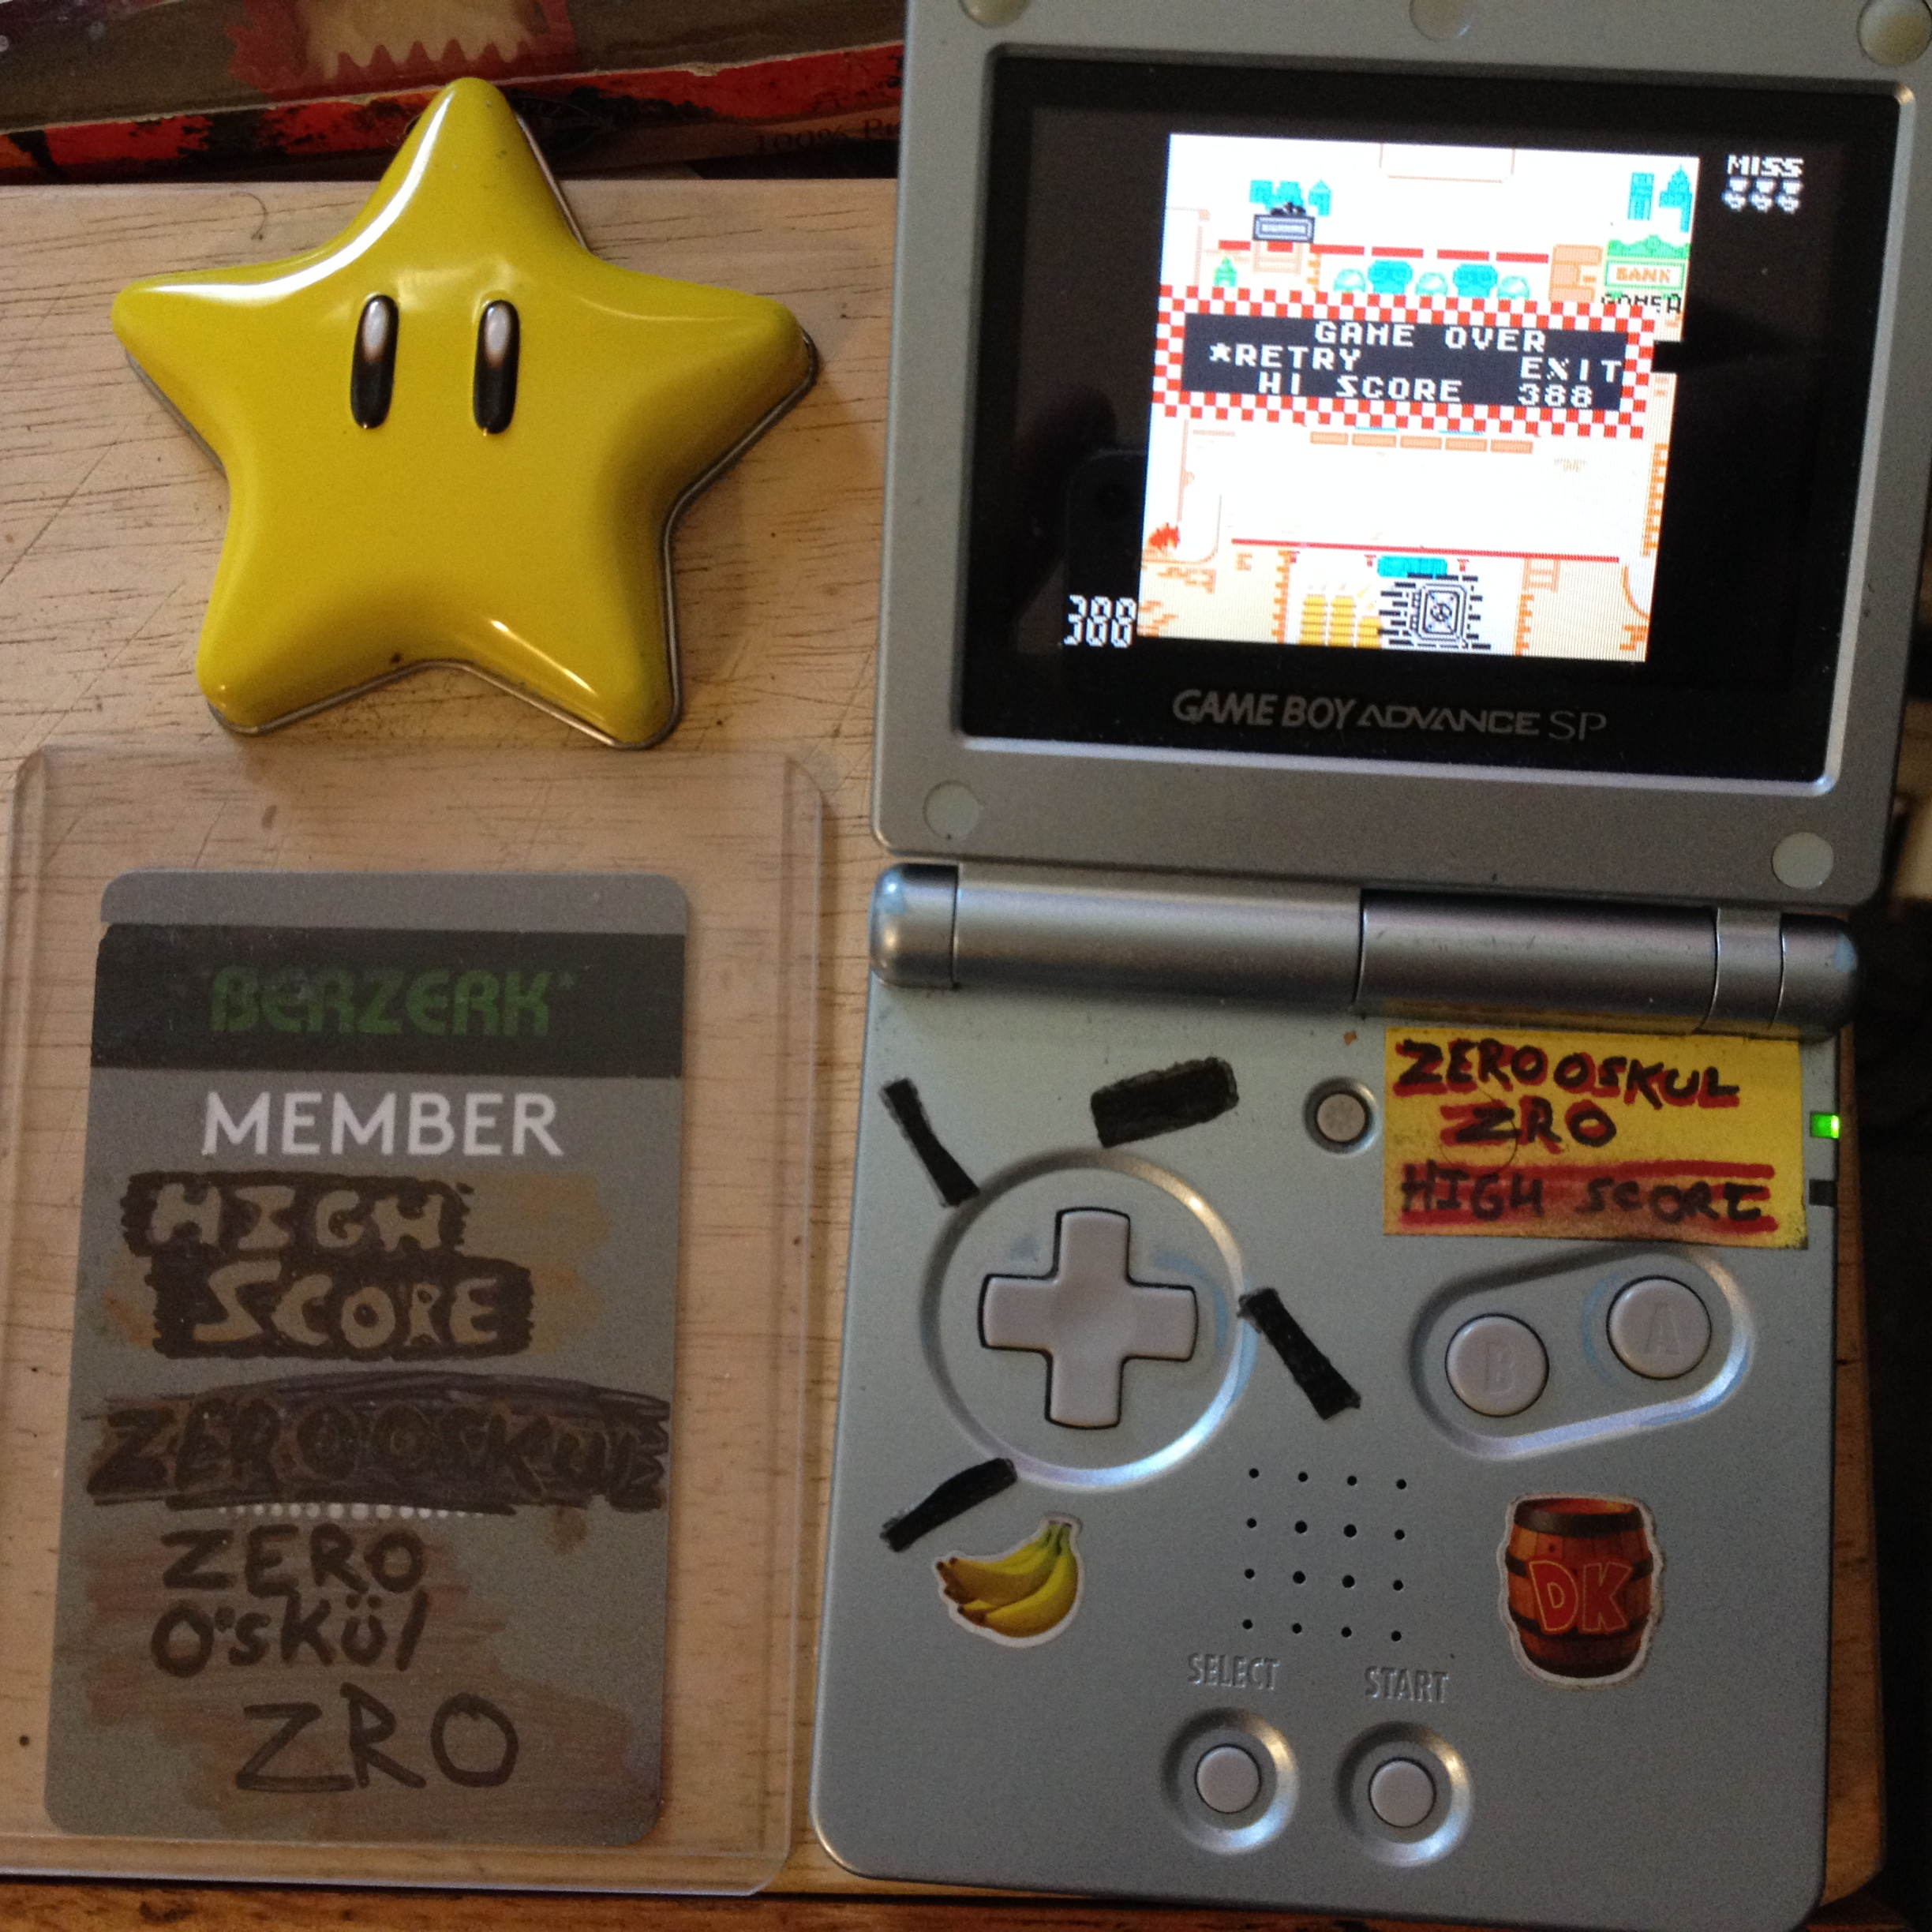 zerooskul: Game & Watch Gallery 4: Safe Buster [Classic-Easy] (GBA) 388 points on 2019-08-24 14:39:21